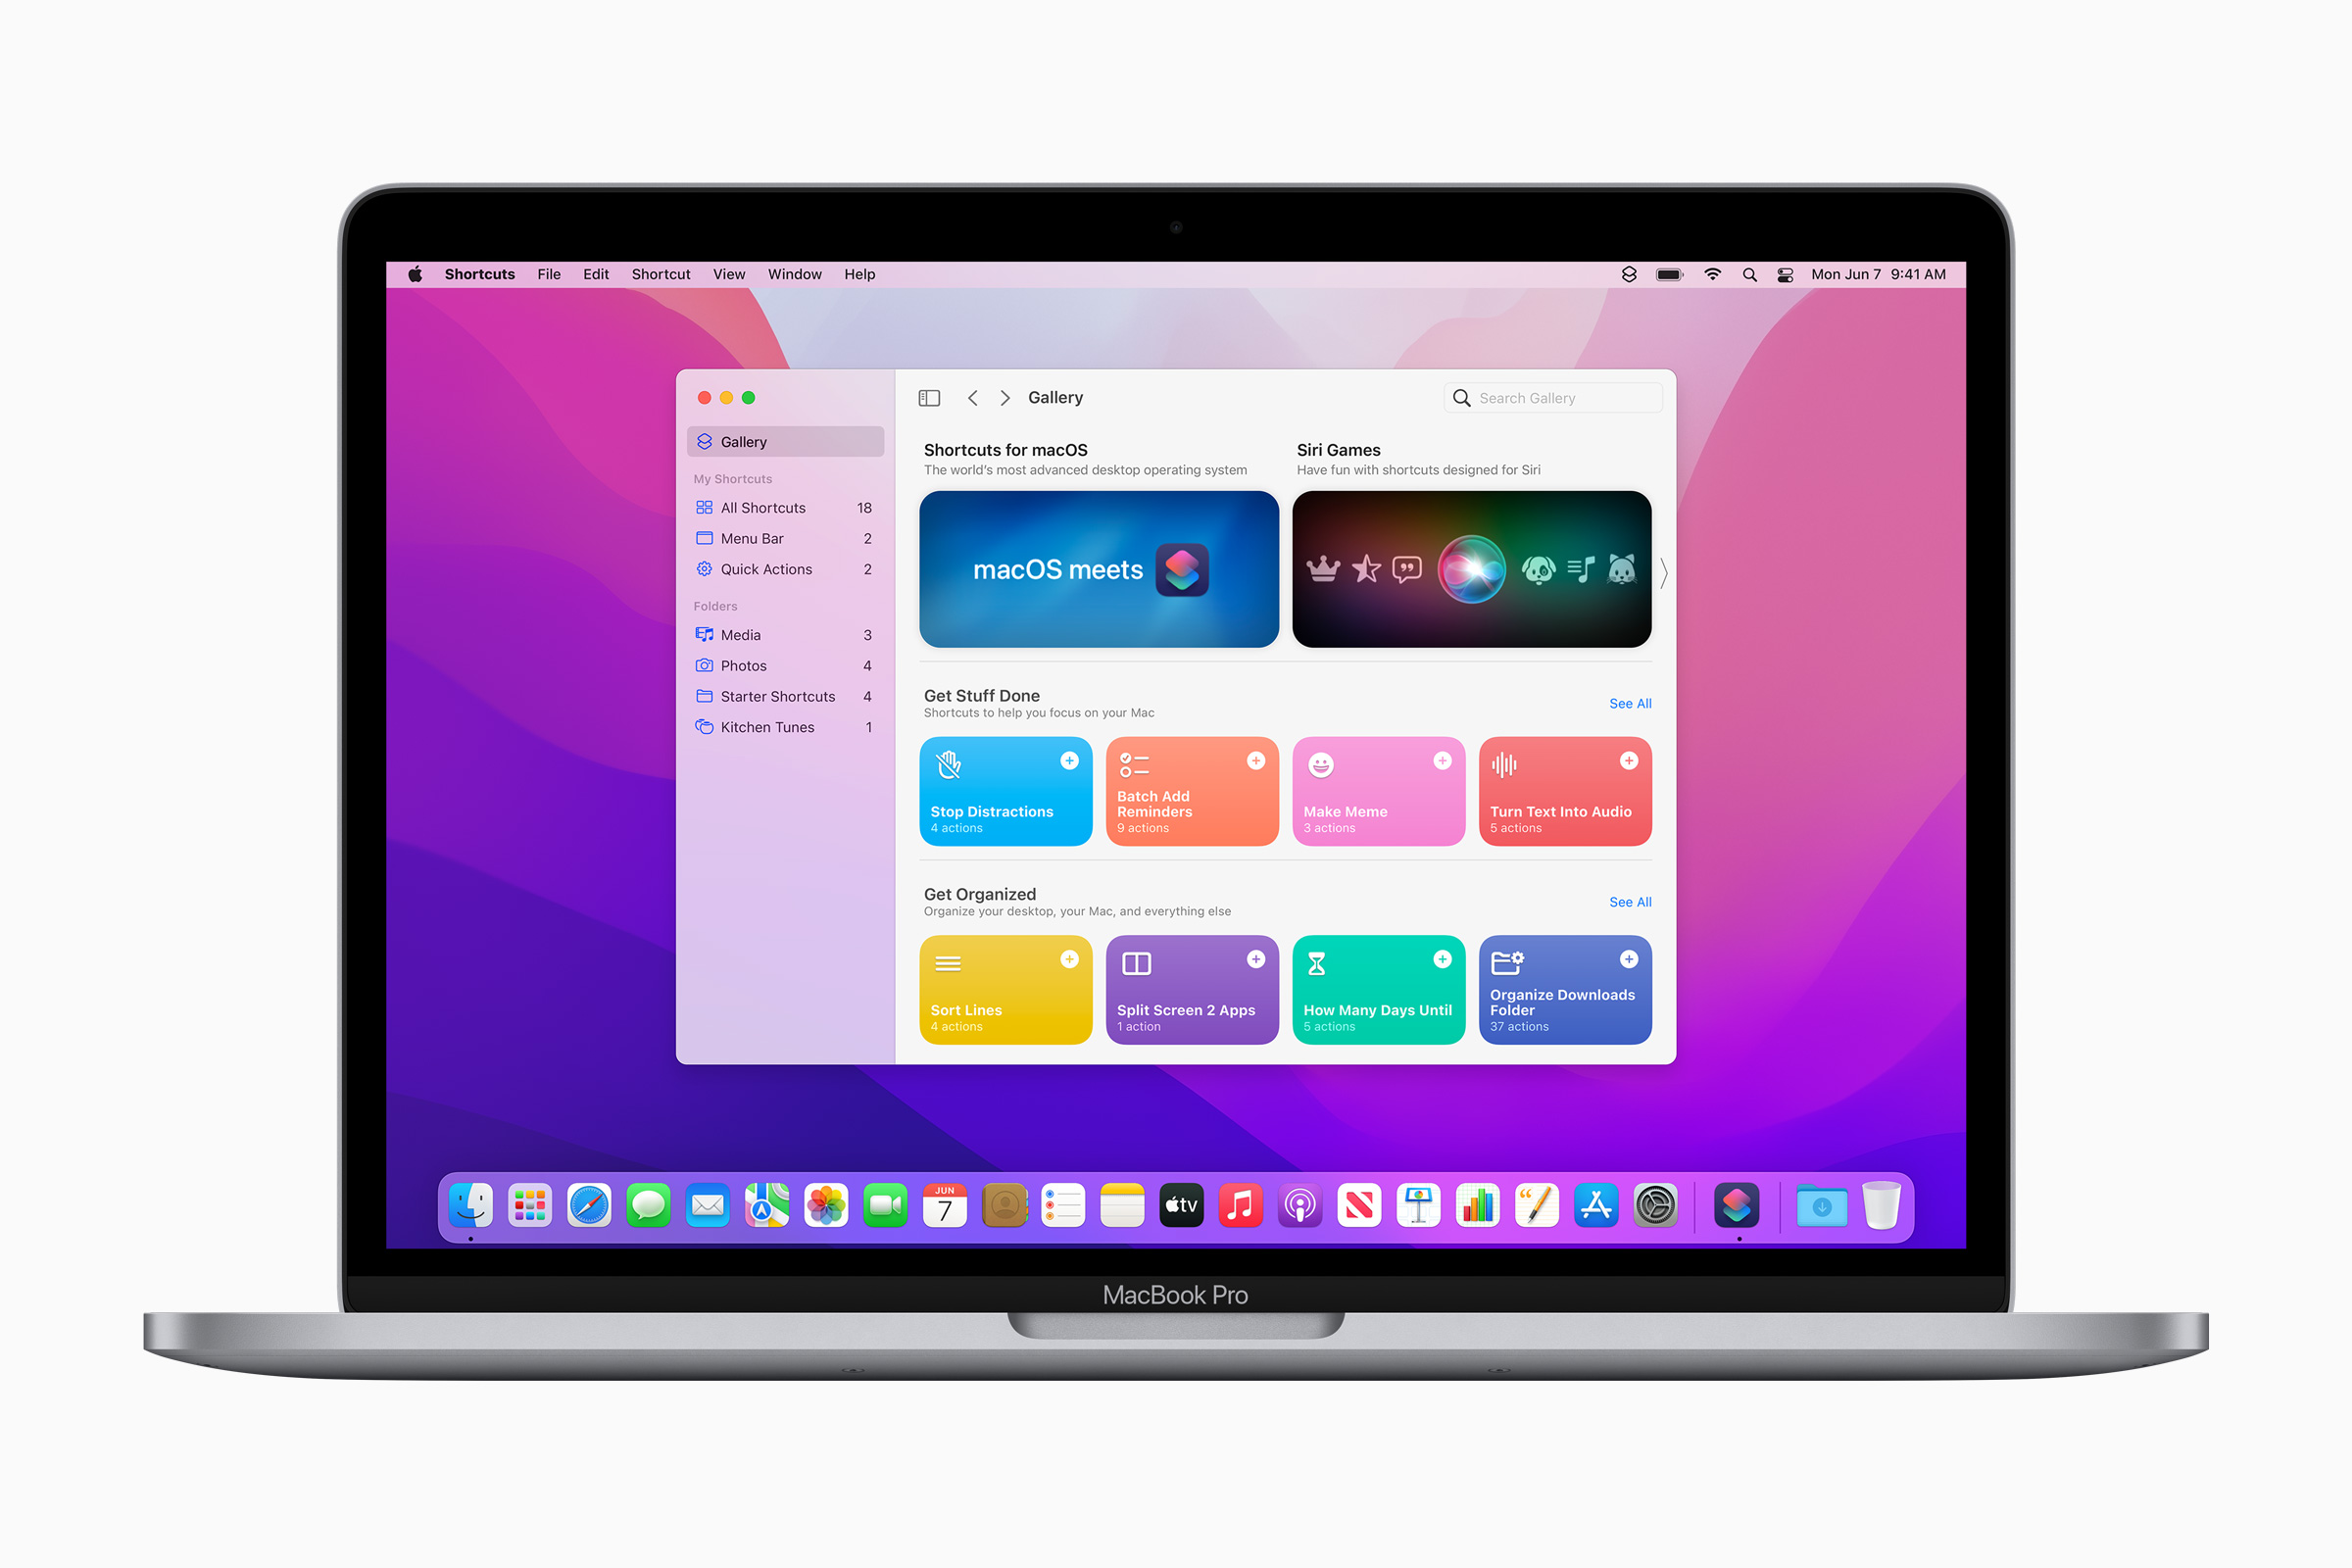 Shortcuts on the Mac, at last.